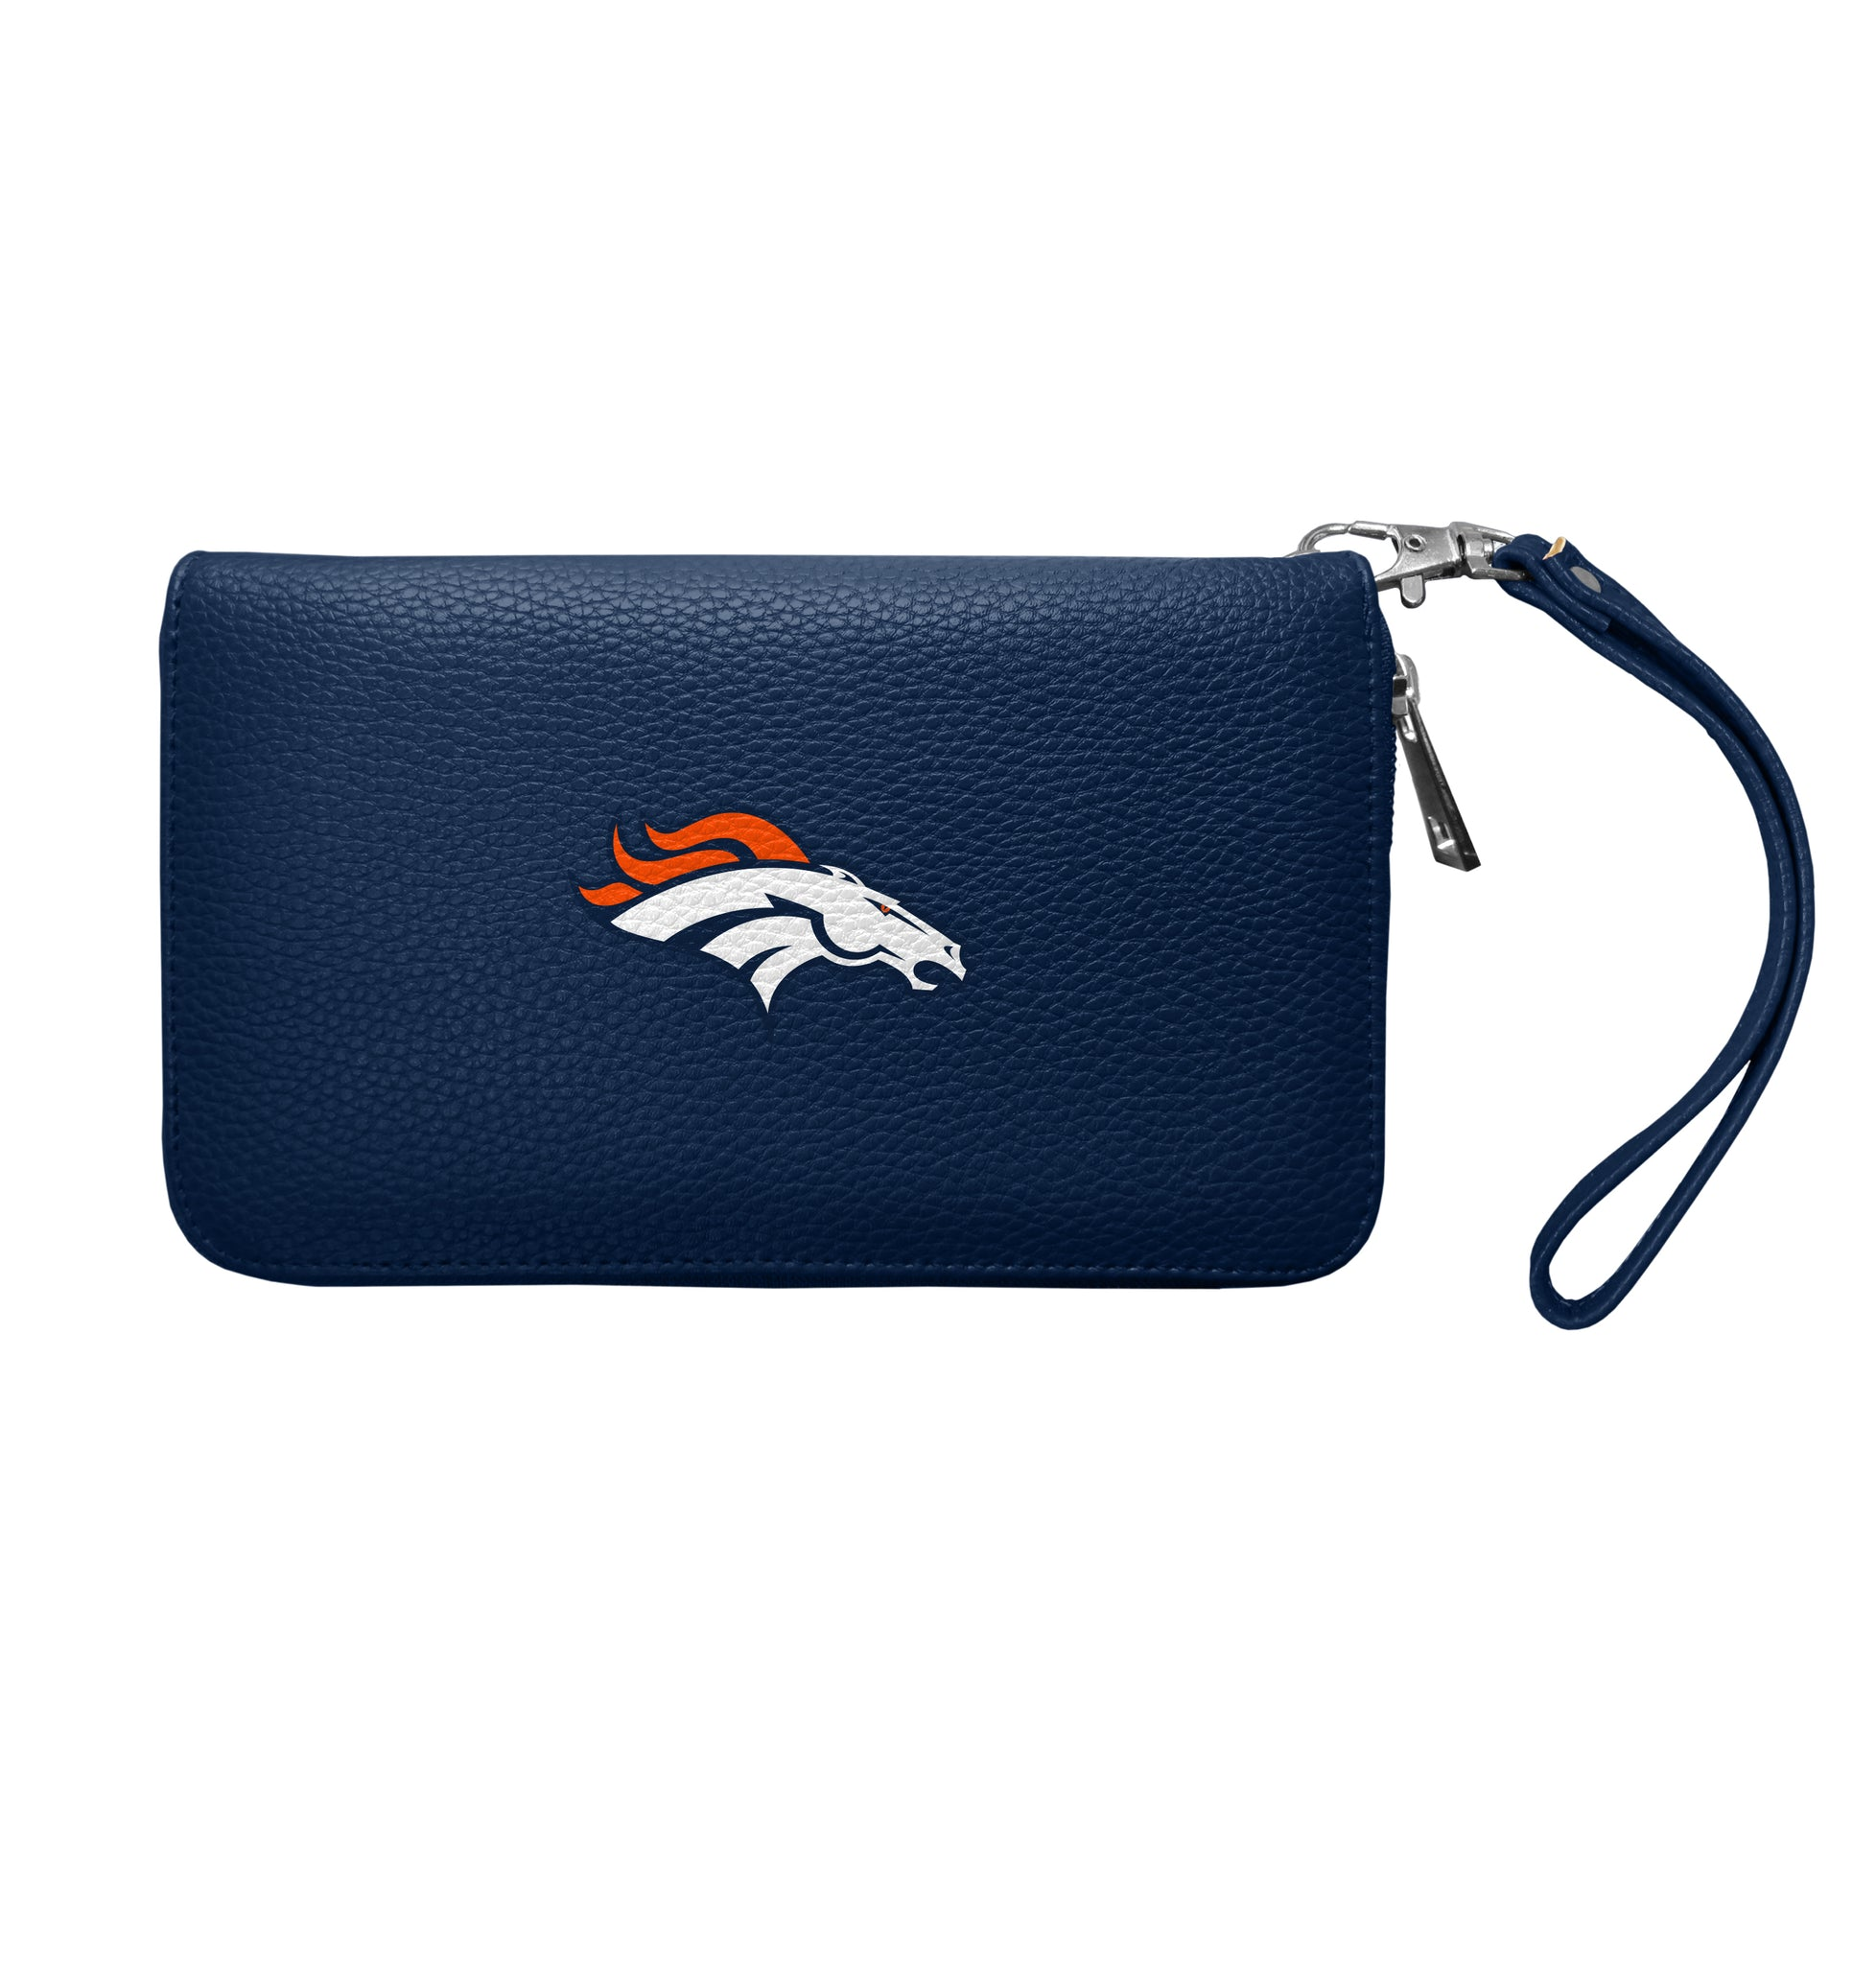 Denver Broncos Zip Organizer Wallet Pebble